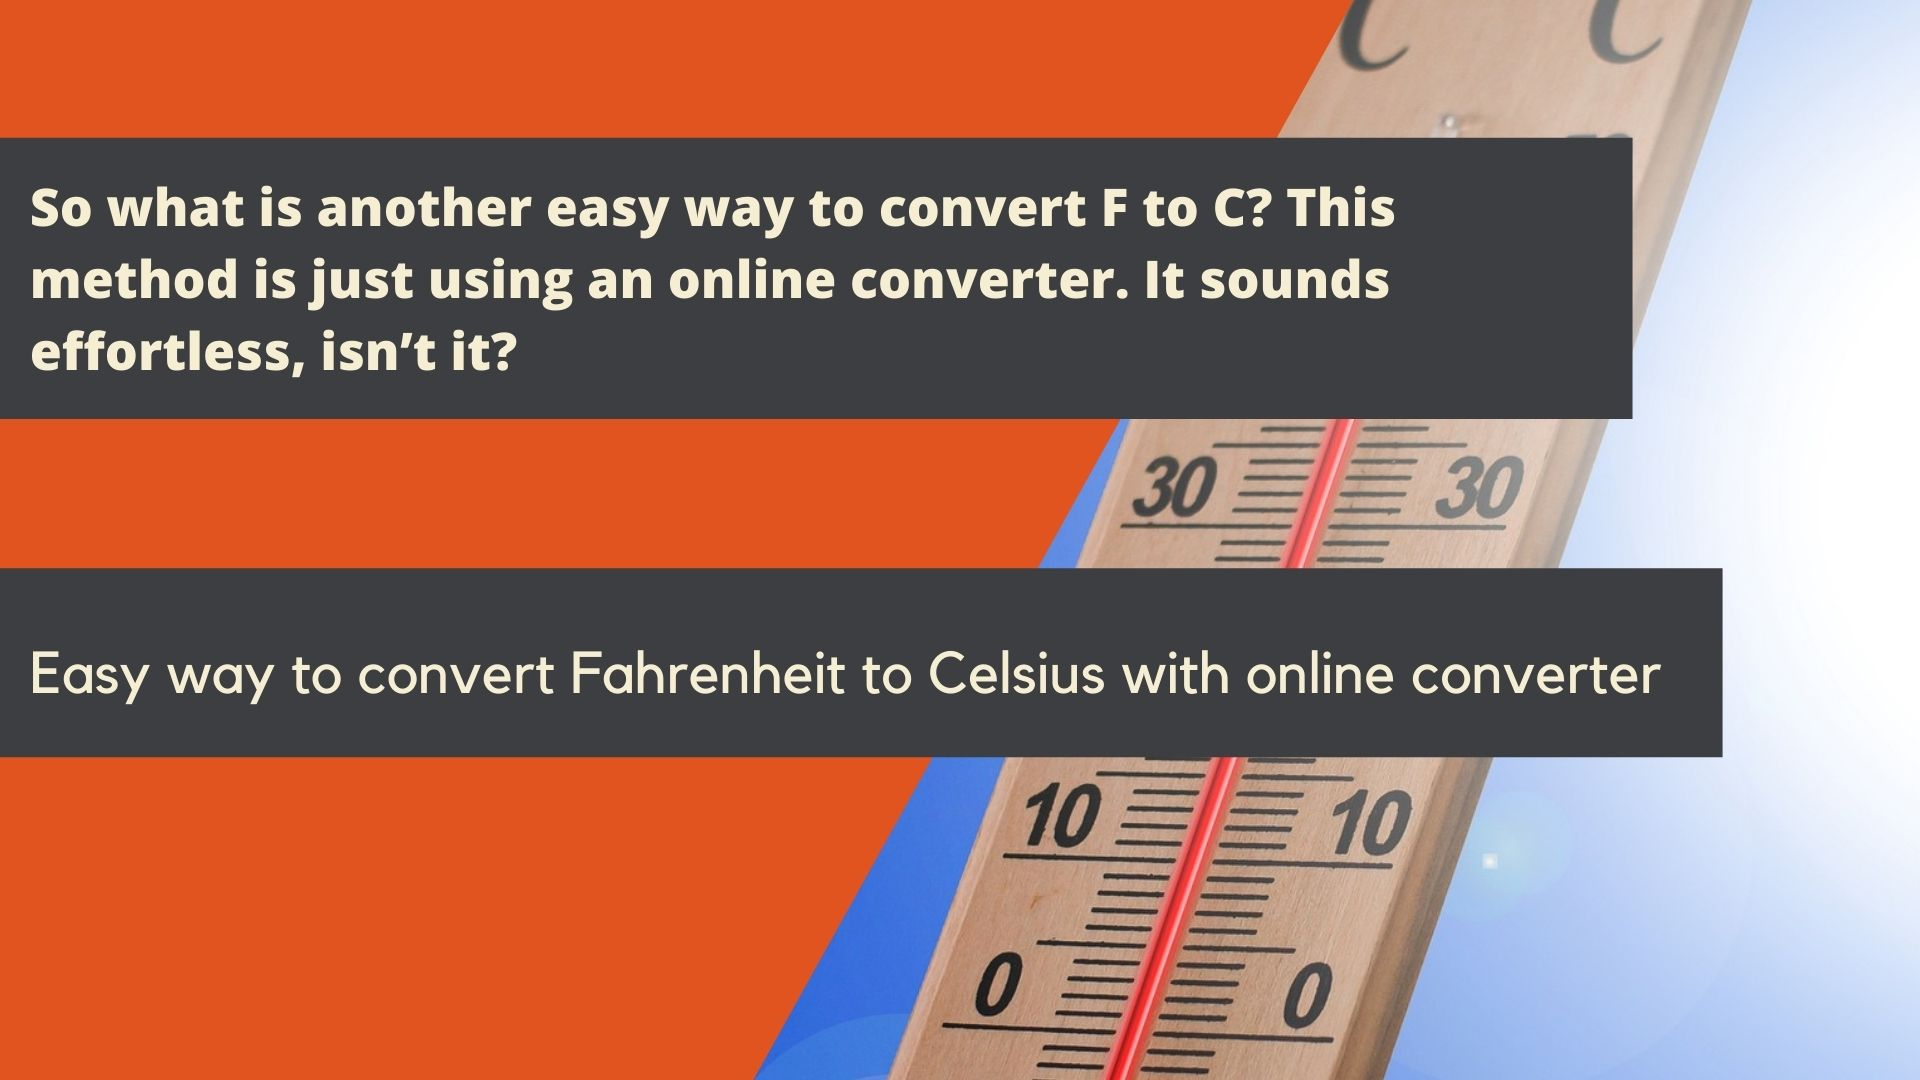 Easy way to convert Fahrenheit to Celsius with online converter